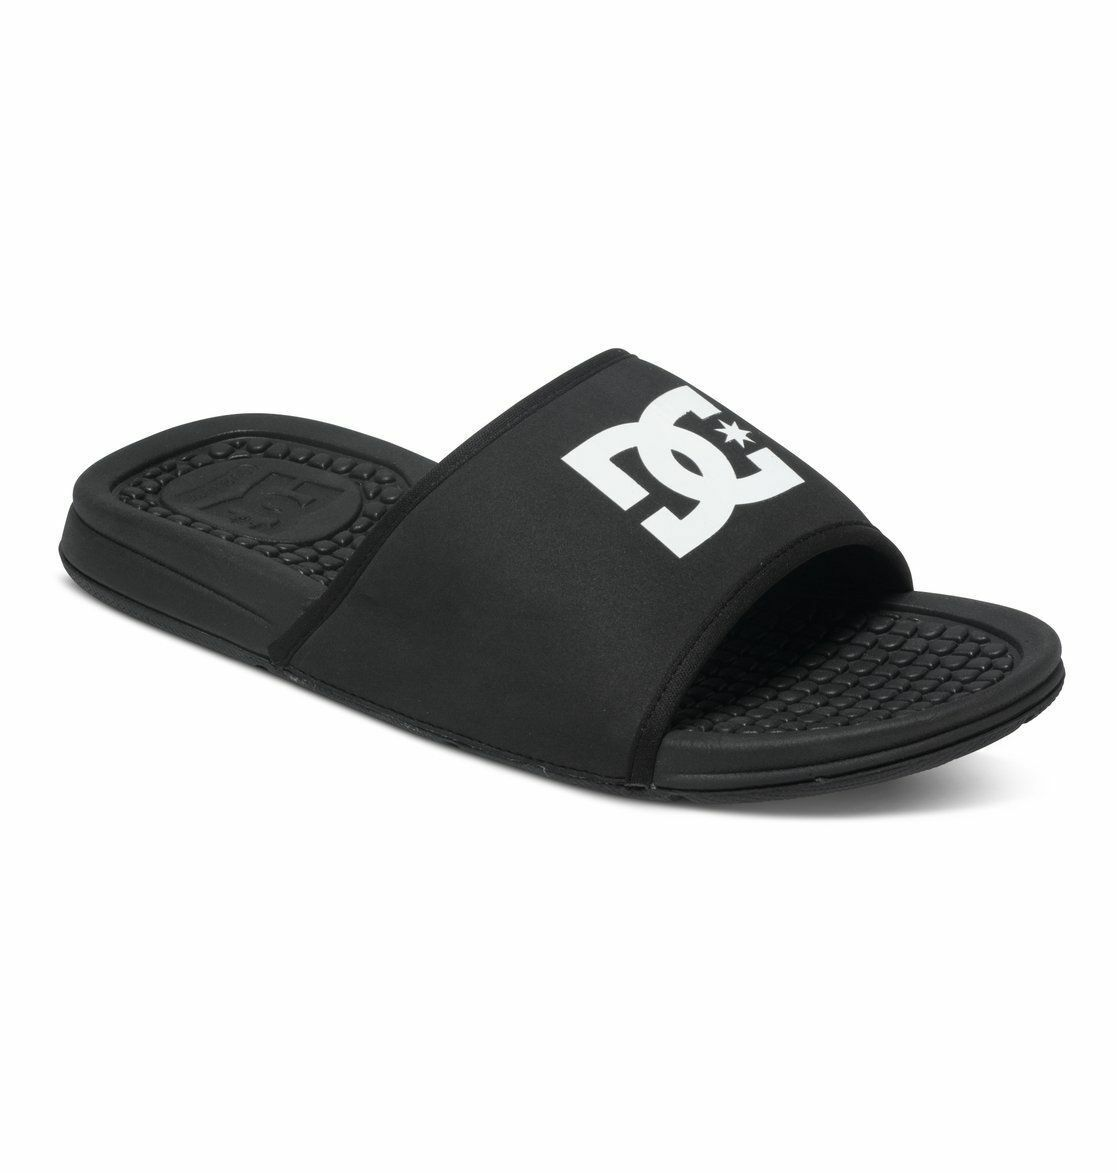 DC Bolsa (black/white) Sandals Slipper Slides Men Free Free Men Shipping 0c3bb7